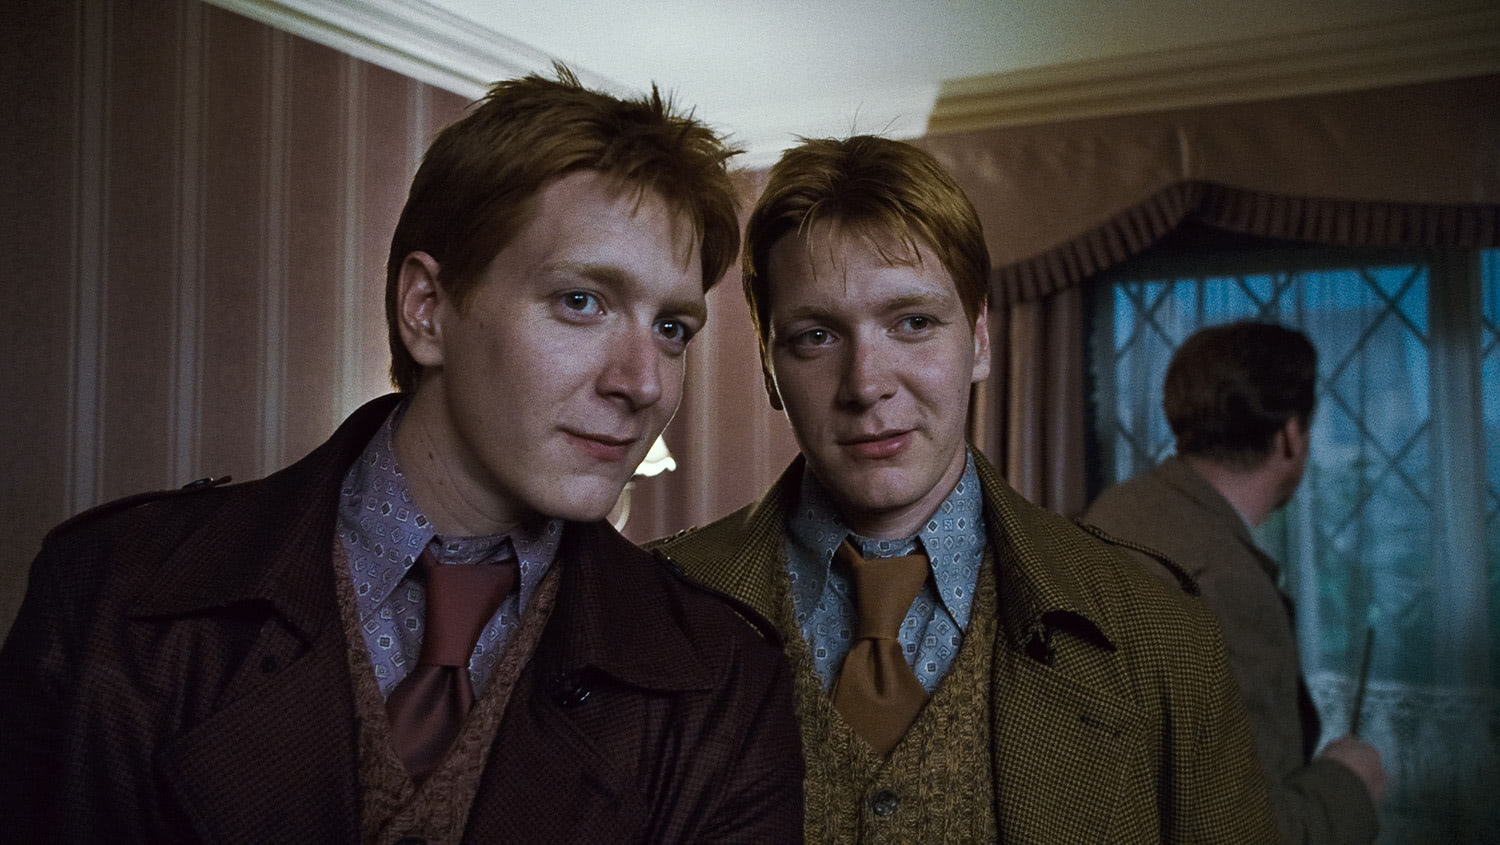 Fred and George Weasley in Privet Drive